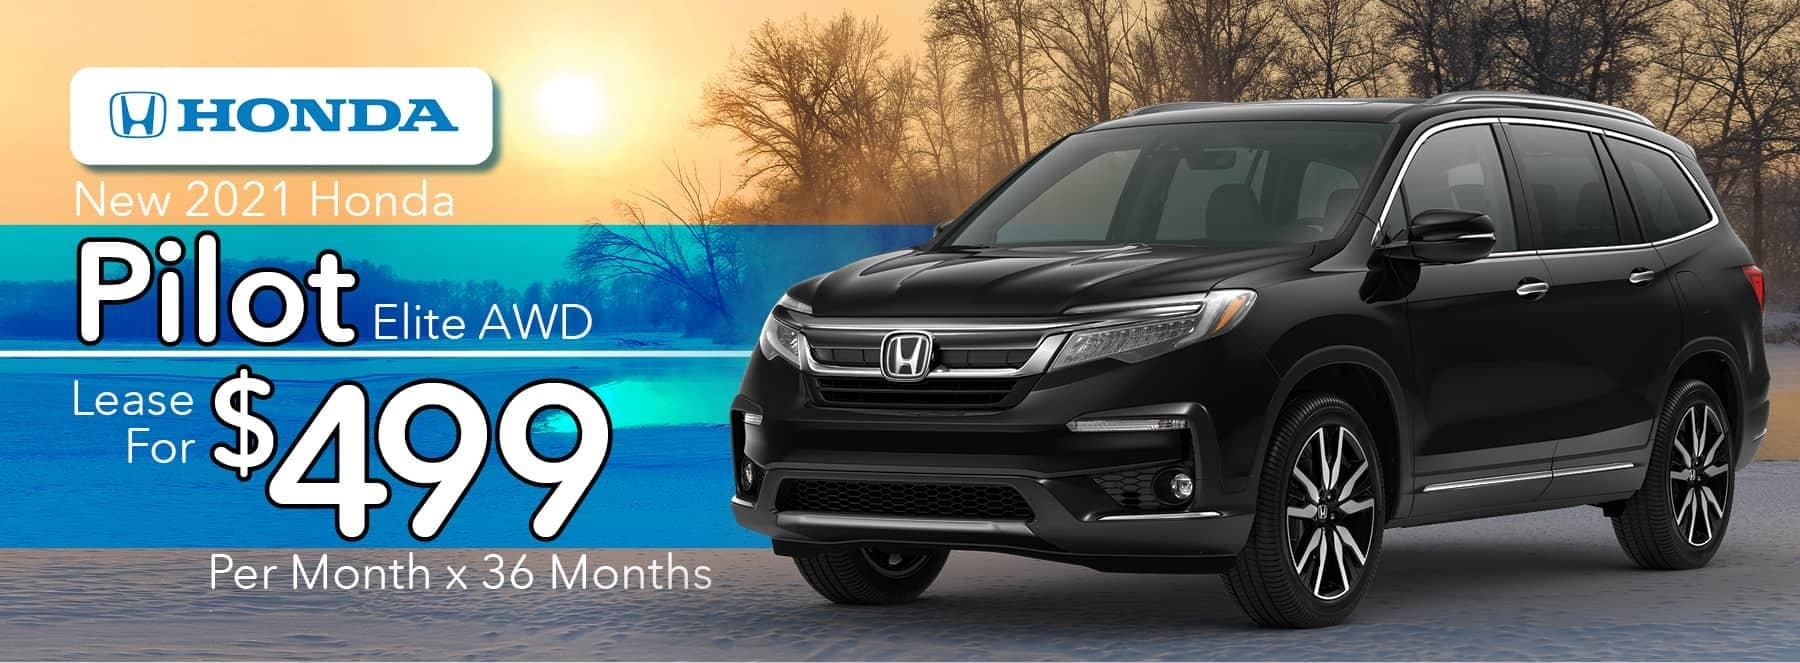 New 2021 Honda Pilot Elite AWD - Lease for $499 per Month for 36 Months